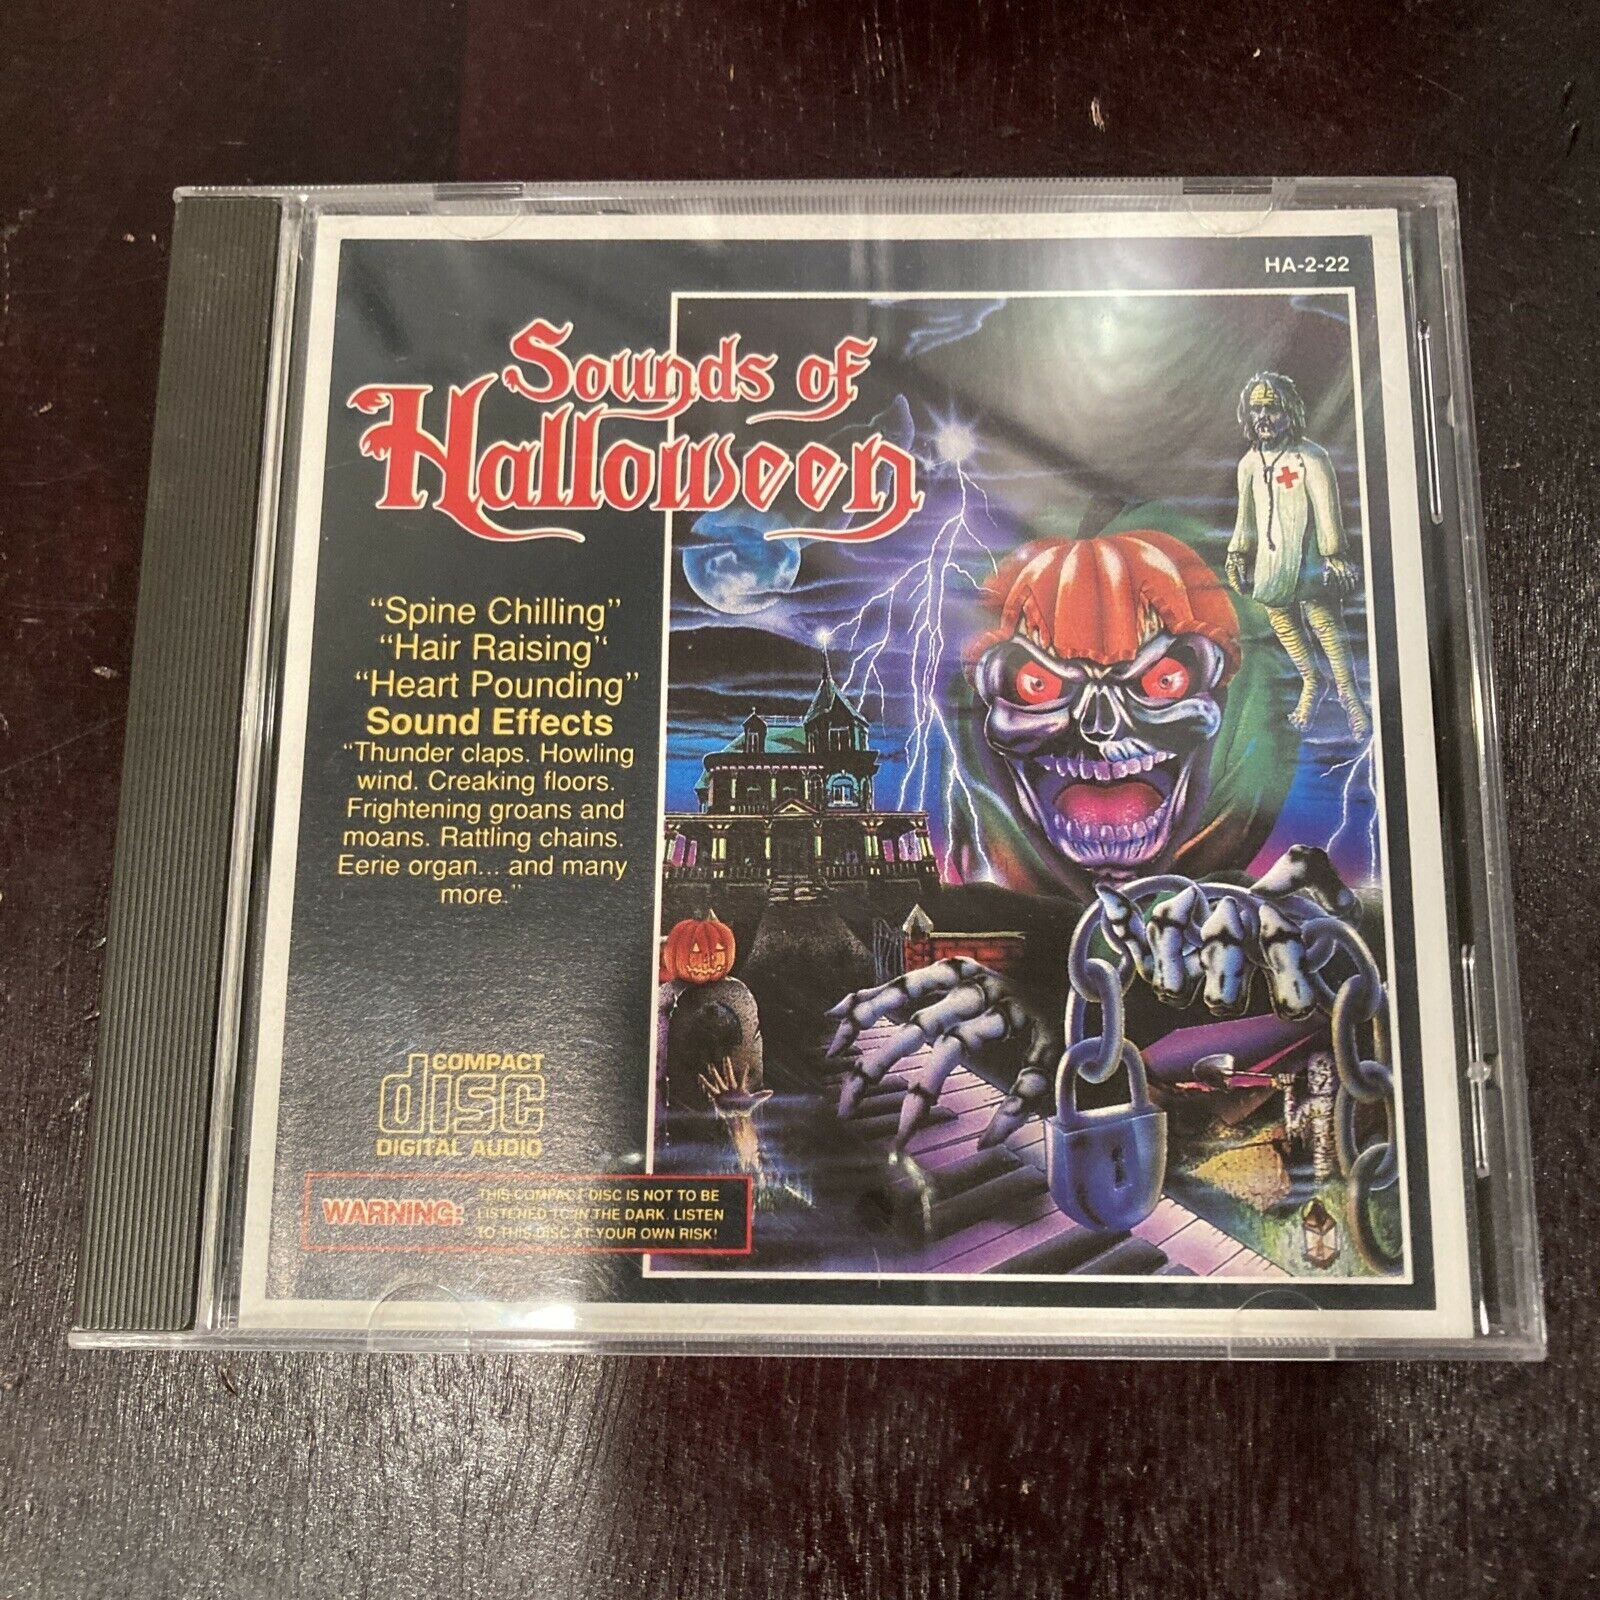 Sounds Of Halloween - Audio CD By Various Artists - VERY GOOD